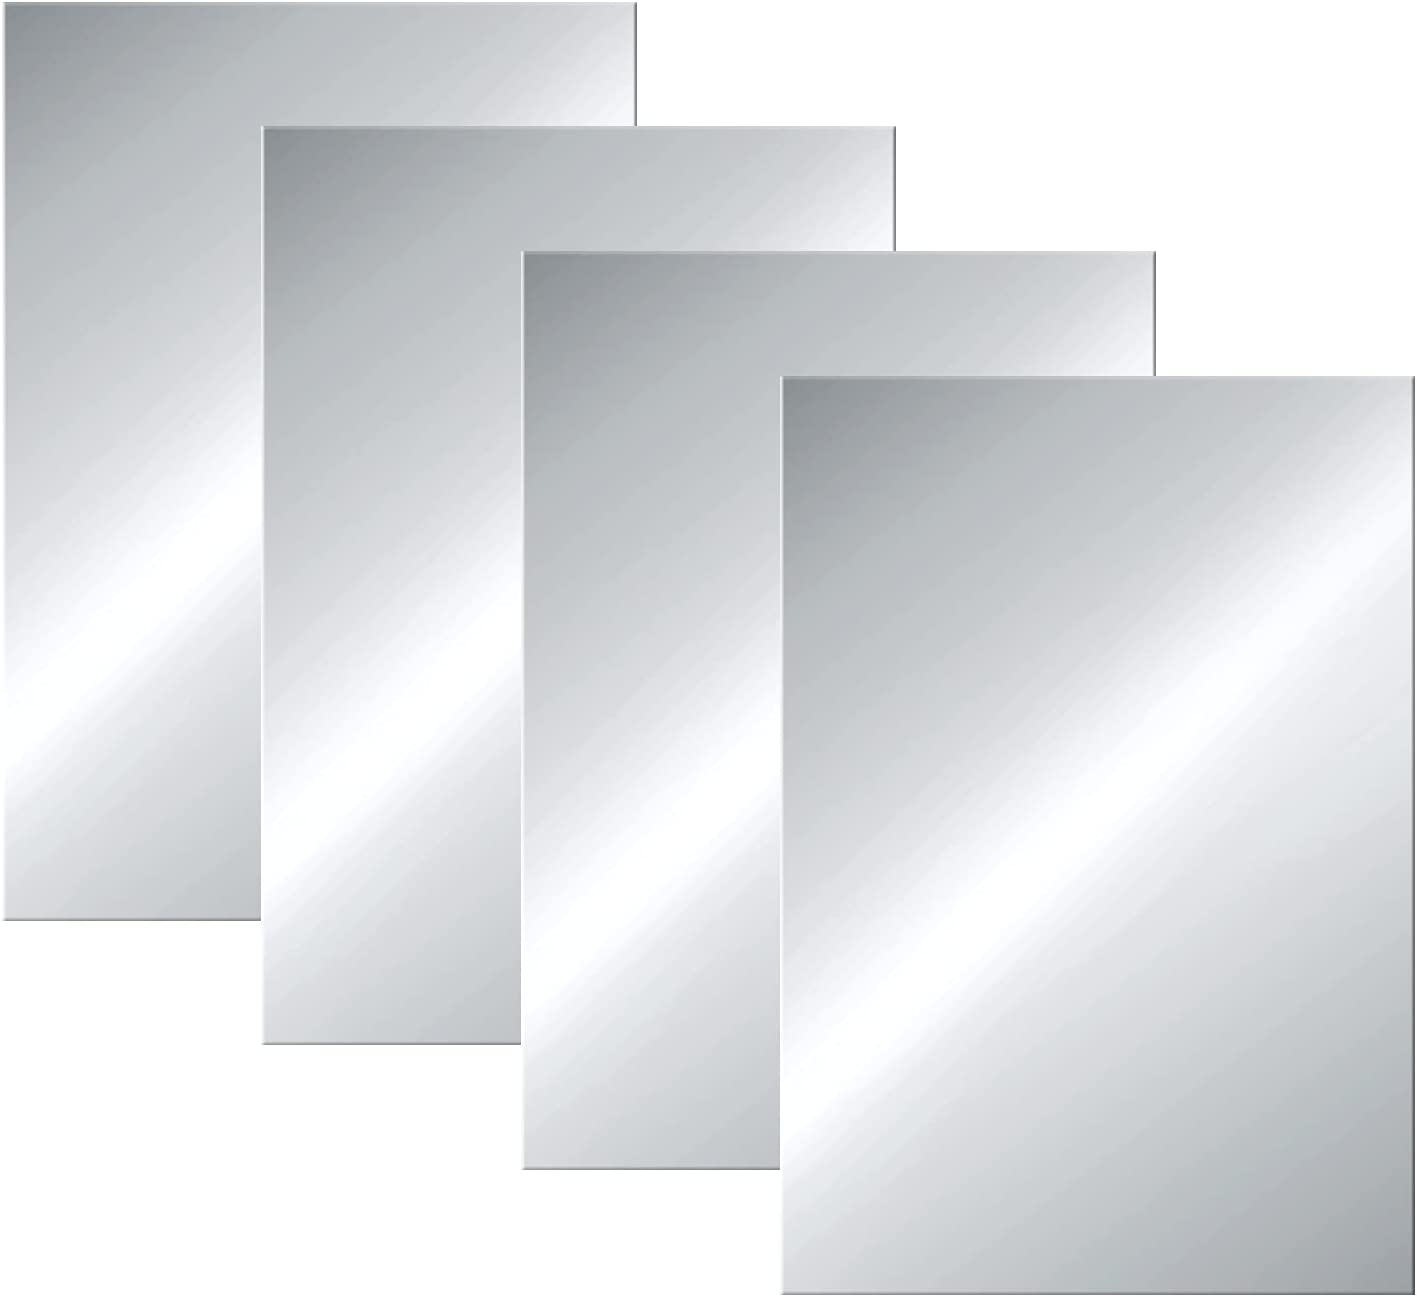 Flexible Mirror Sheets 6 x 9 Inches Self Adhesive Non Glass Cut to Size Mirror Sheets 4 Pieces Fun House Mirror Tiles for Home Wall Decor Easy to Cut Mirror Stickers